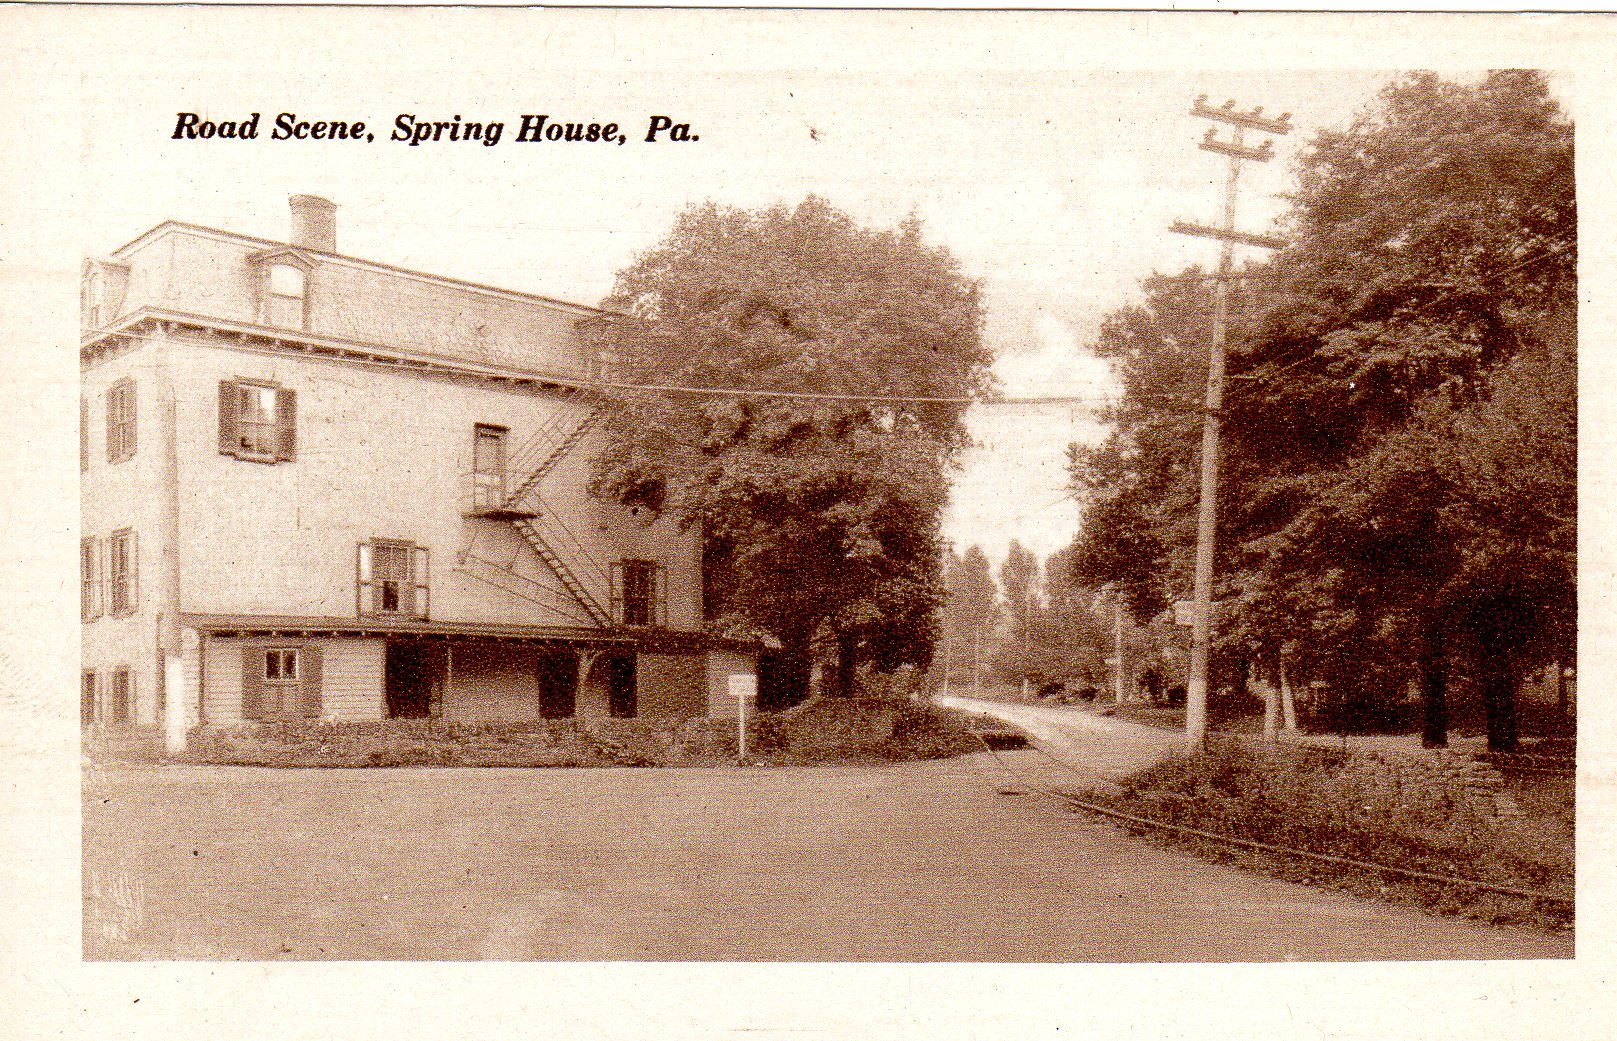 Post Card Collection (E Simon)_2682_74_Road Scene, Spring House, Pa